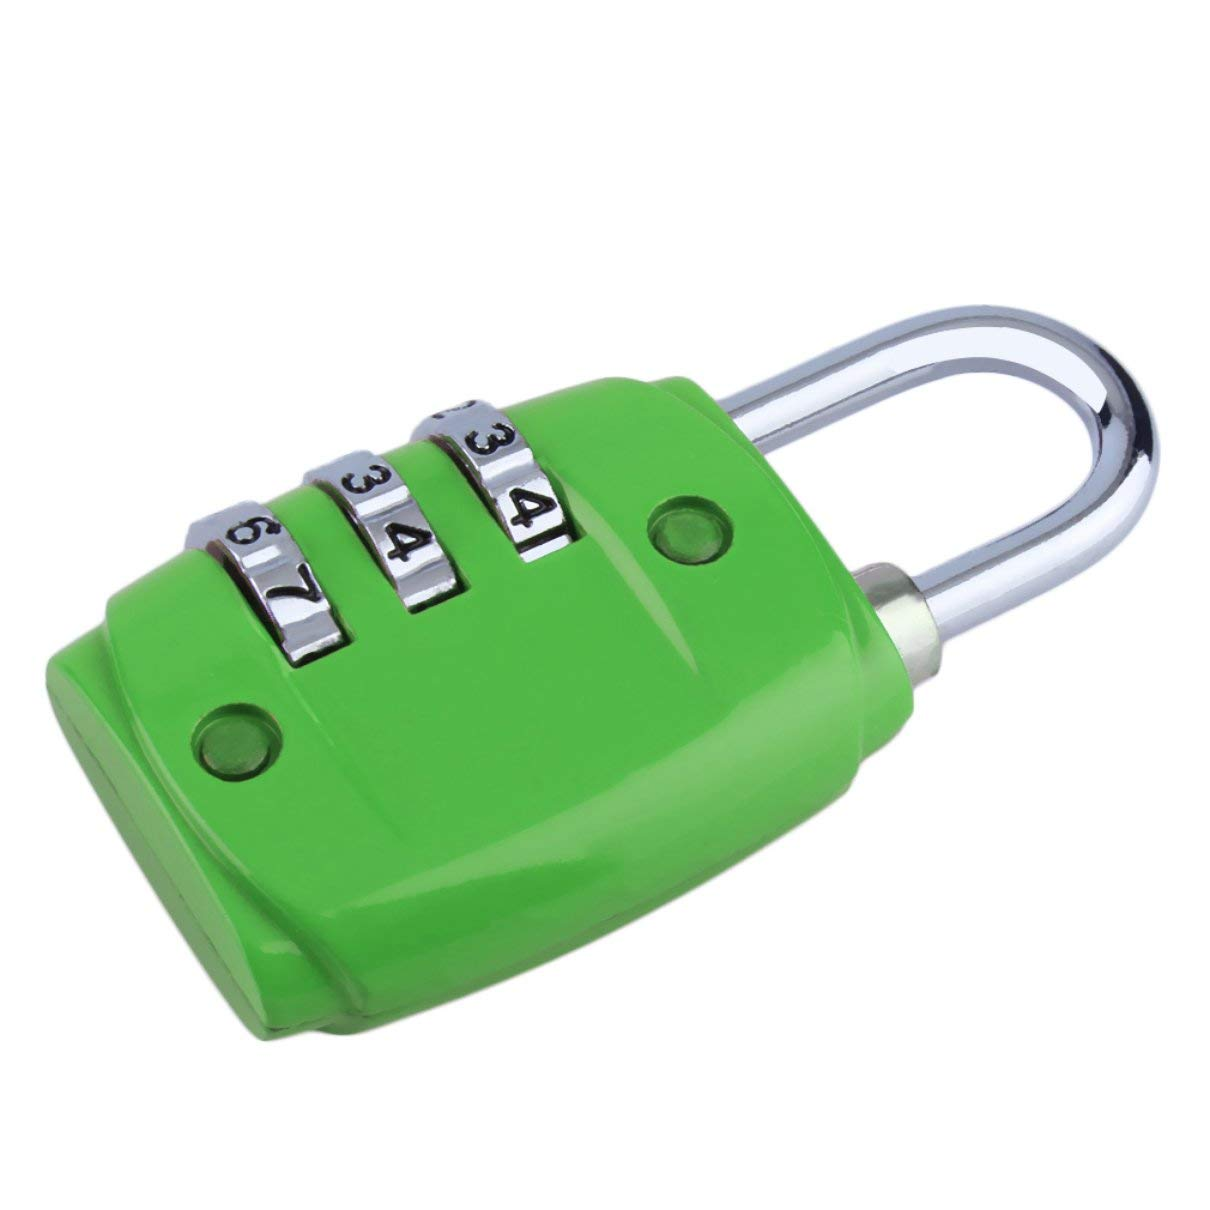 Zinc Alloy Security 3 Digit Dial Combination Code Number Lock Padlock for Luggage Zipper Backpack Handbag Suitcase Drawer